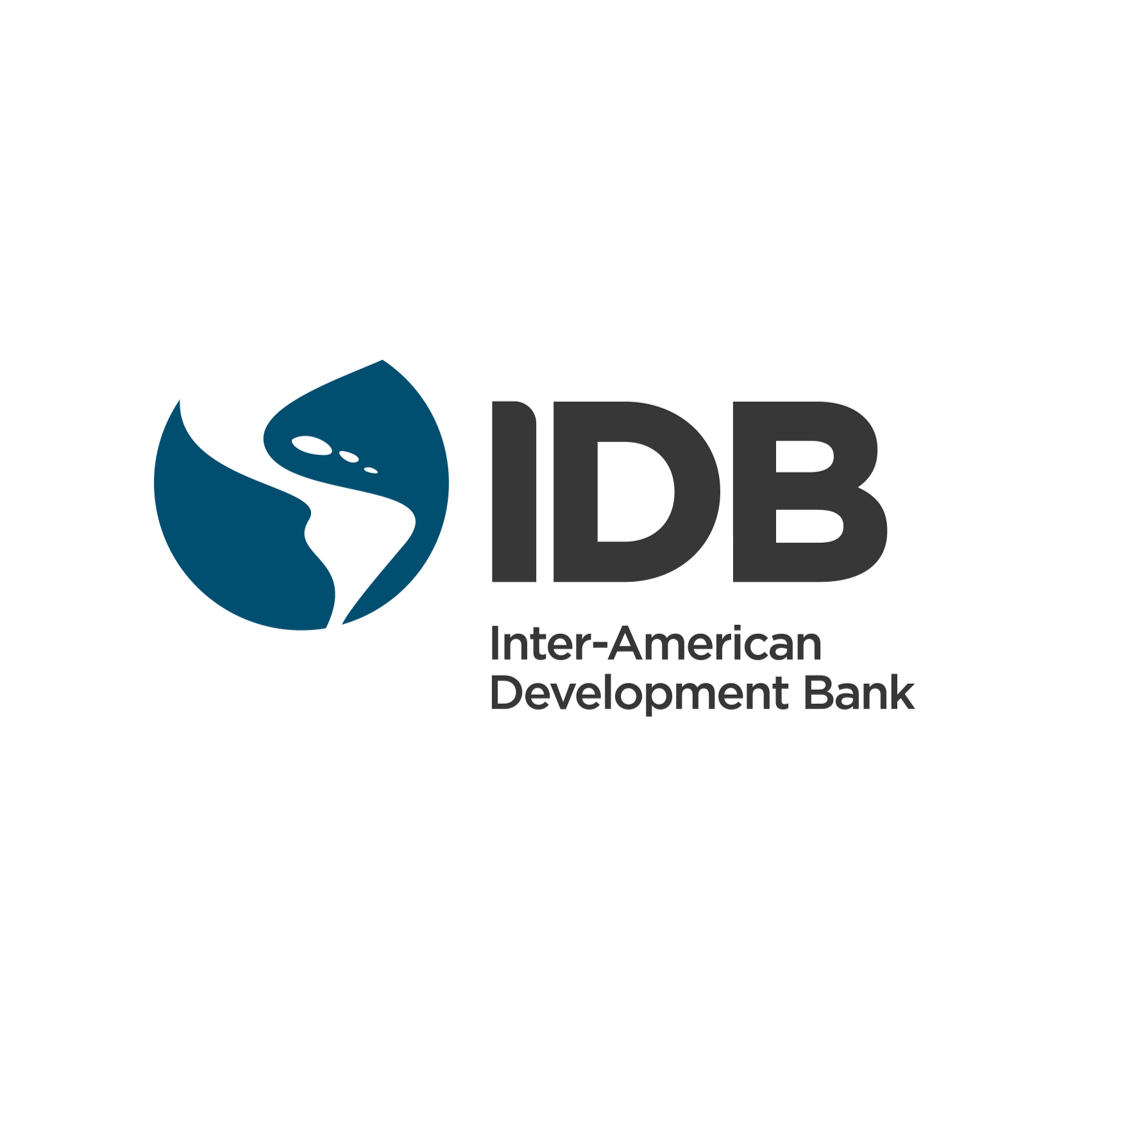 Inter-American Development Bank‍